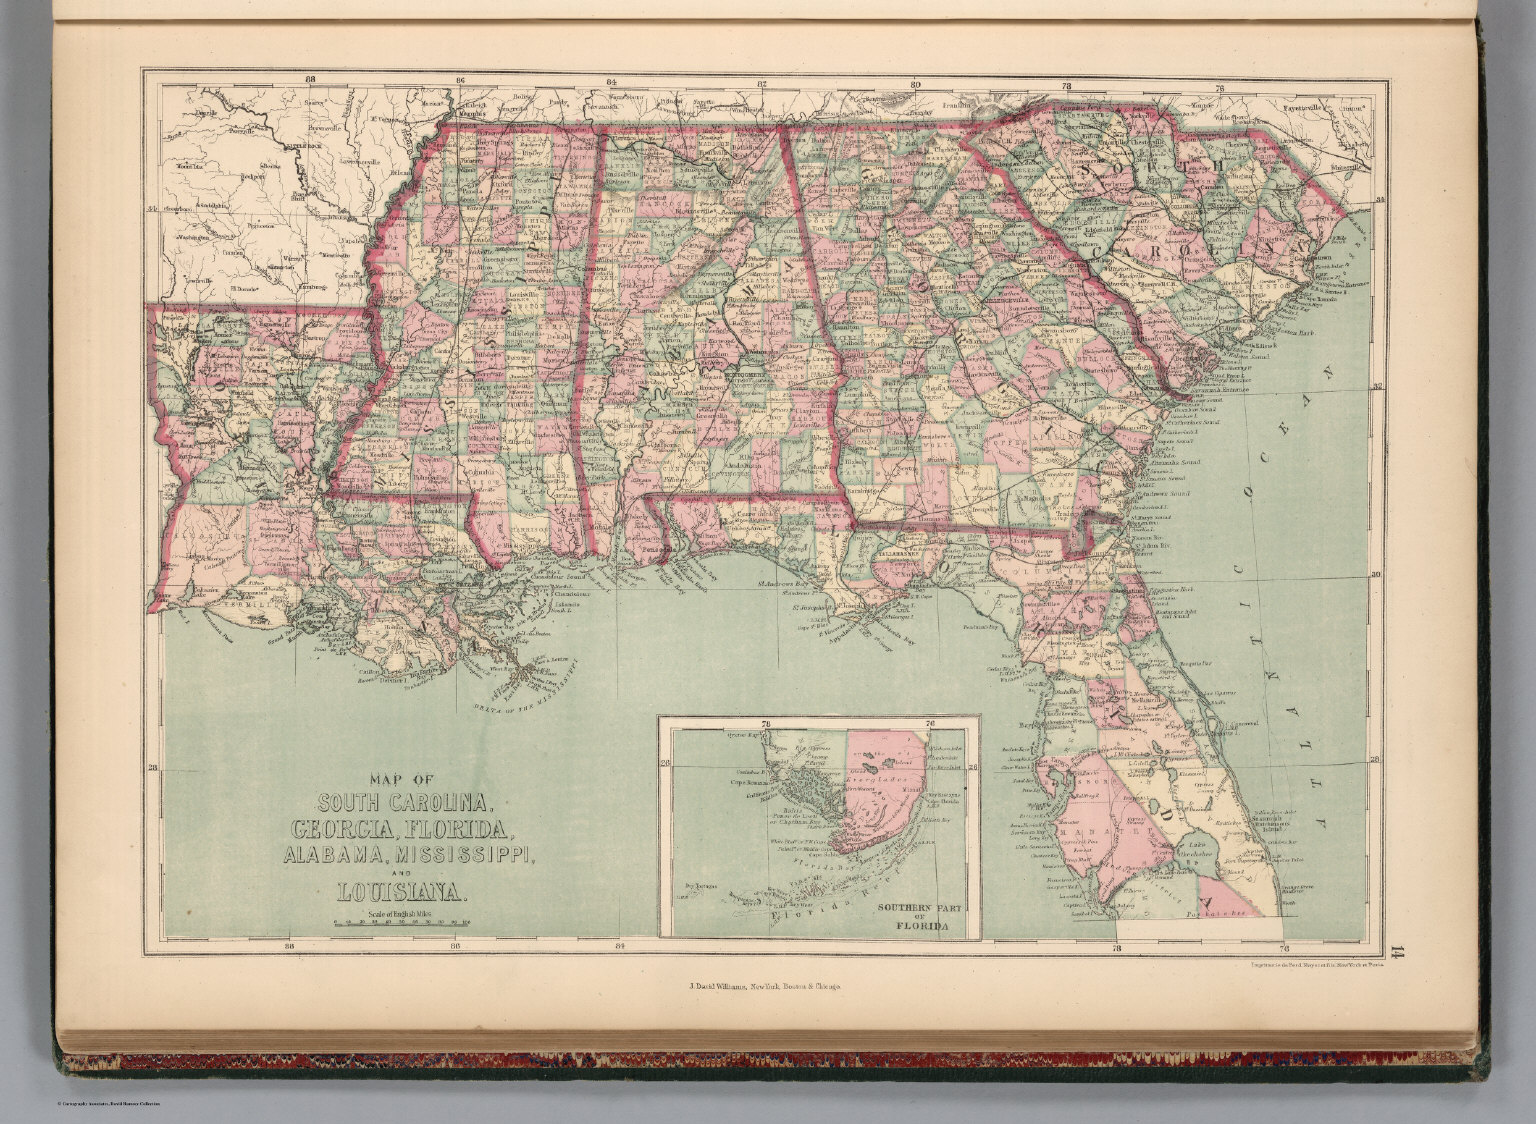 South Carolina Georgia Florida Alabama Mississippi And - Map of alabama and florida